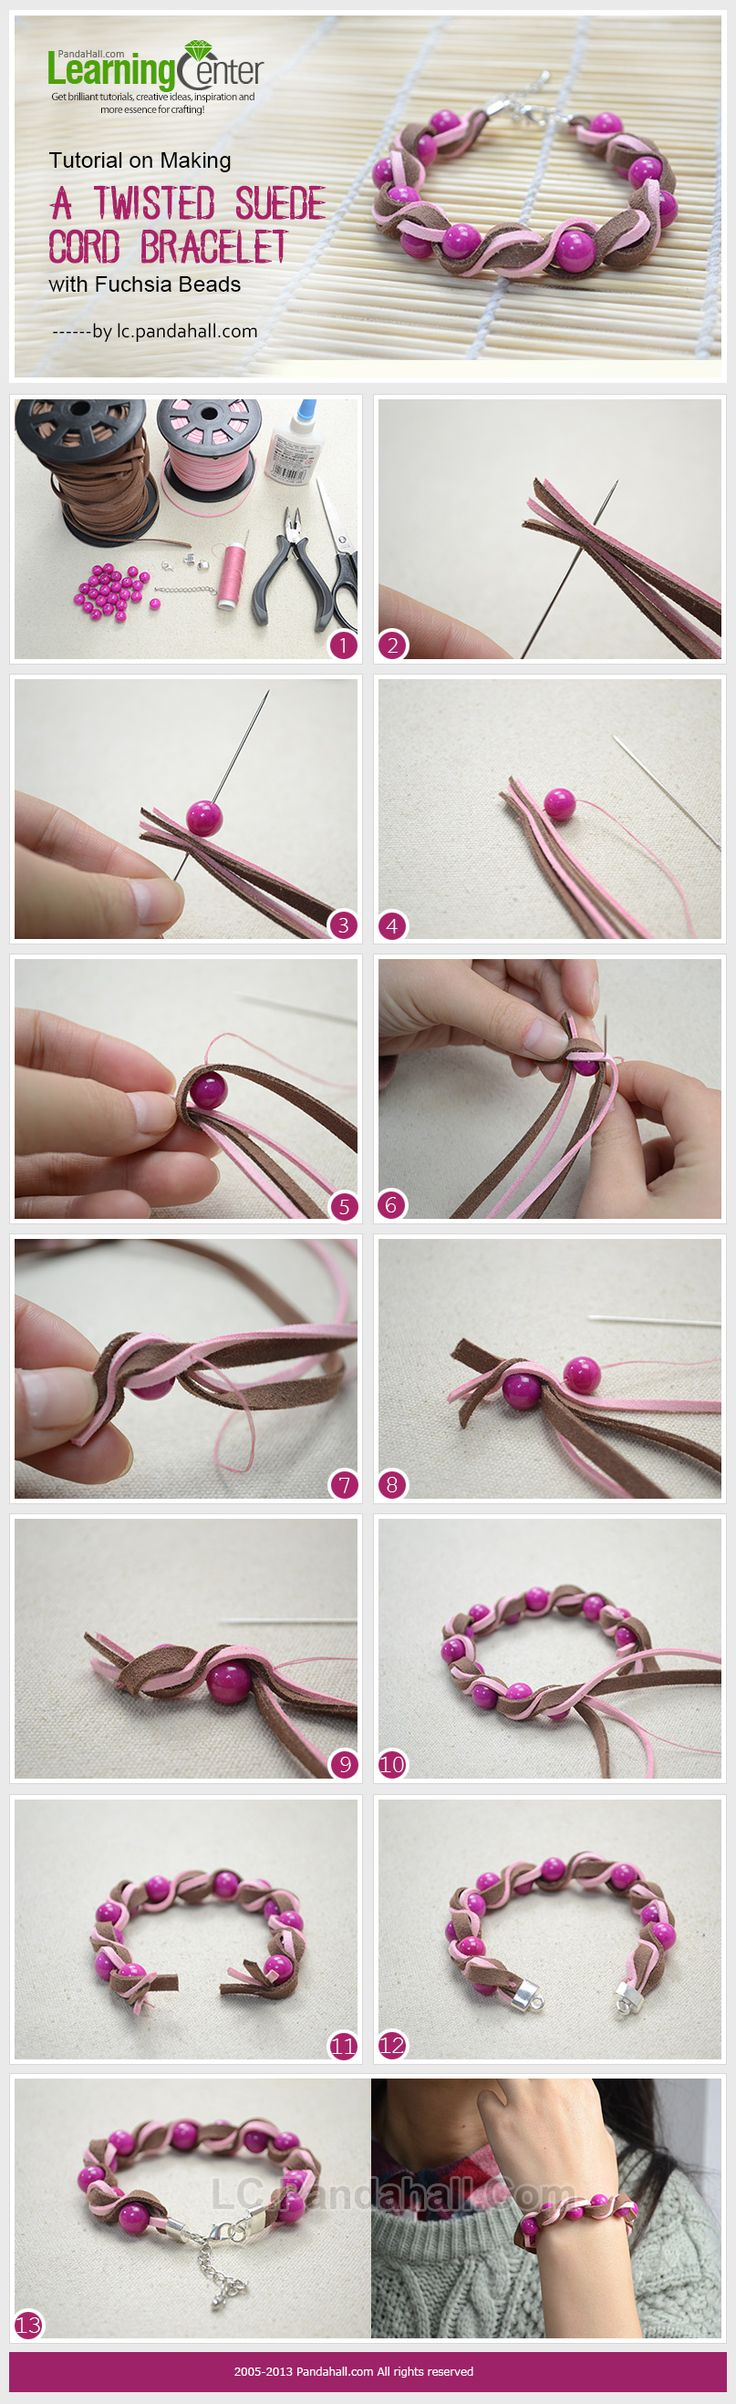 best punonta images on pinterest braid crafts and weaving